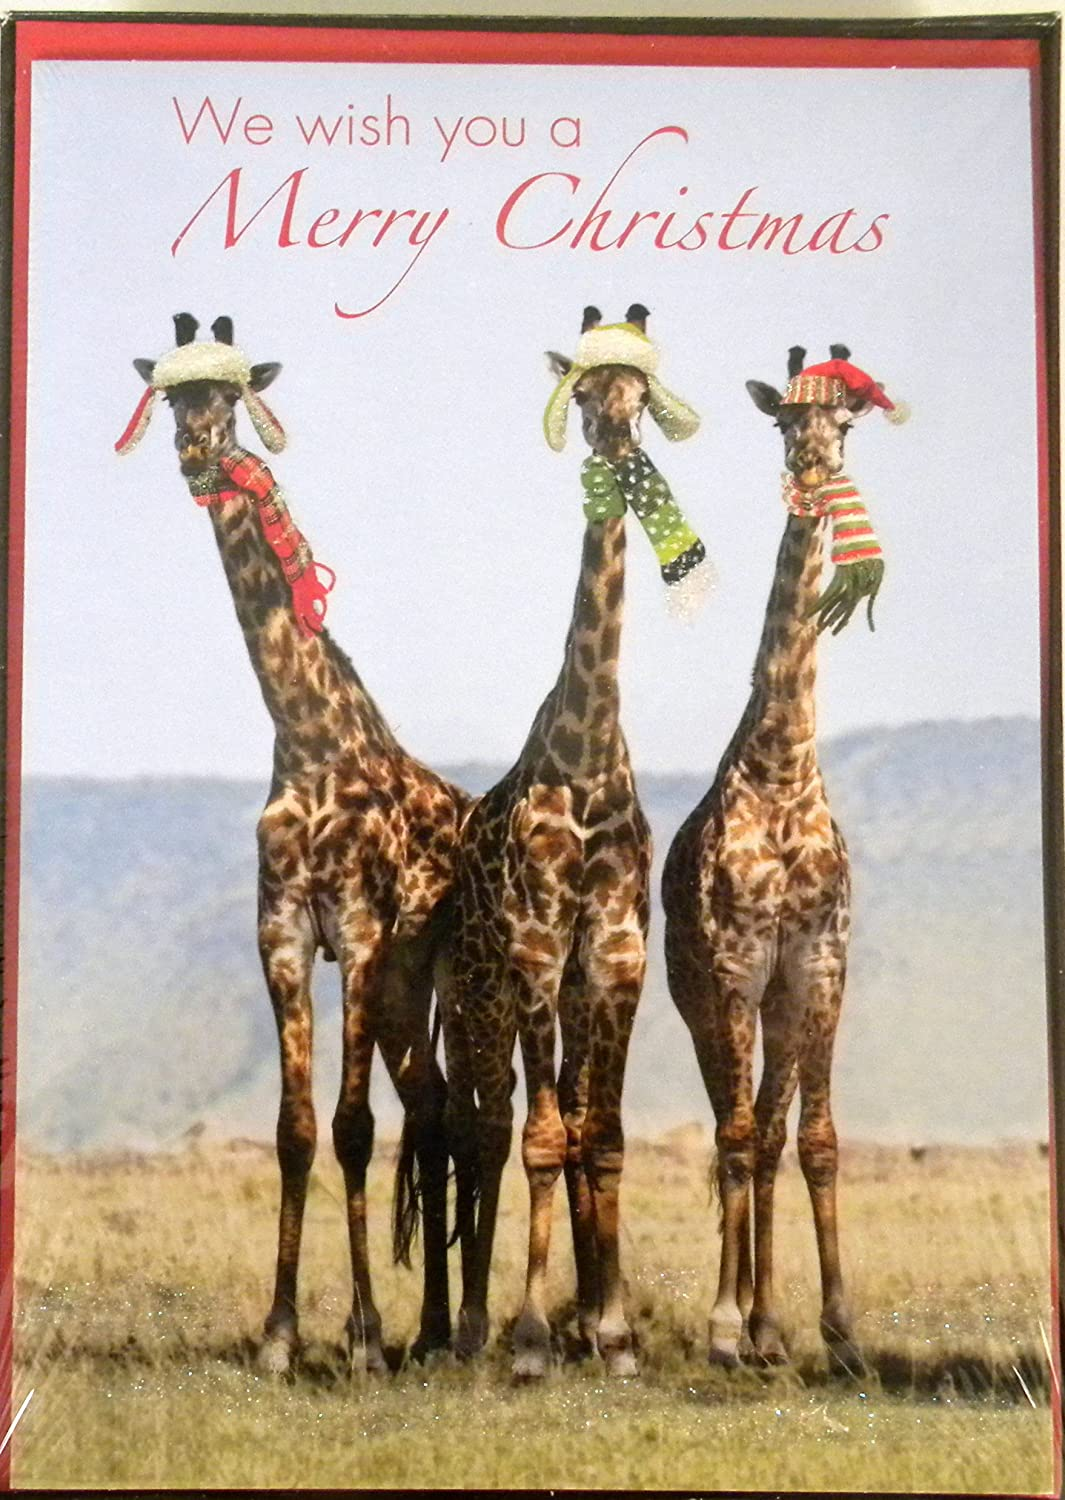 National Geographic Christmas Cards.Amazon Com National Geographic Giraffe Christmas Cards